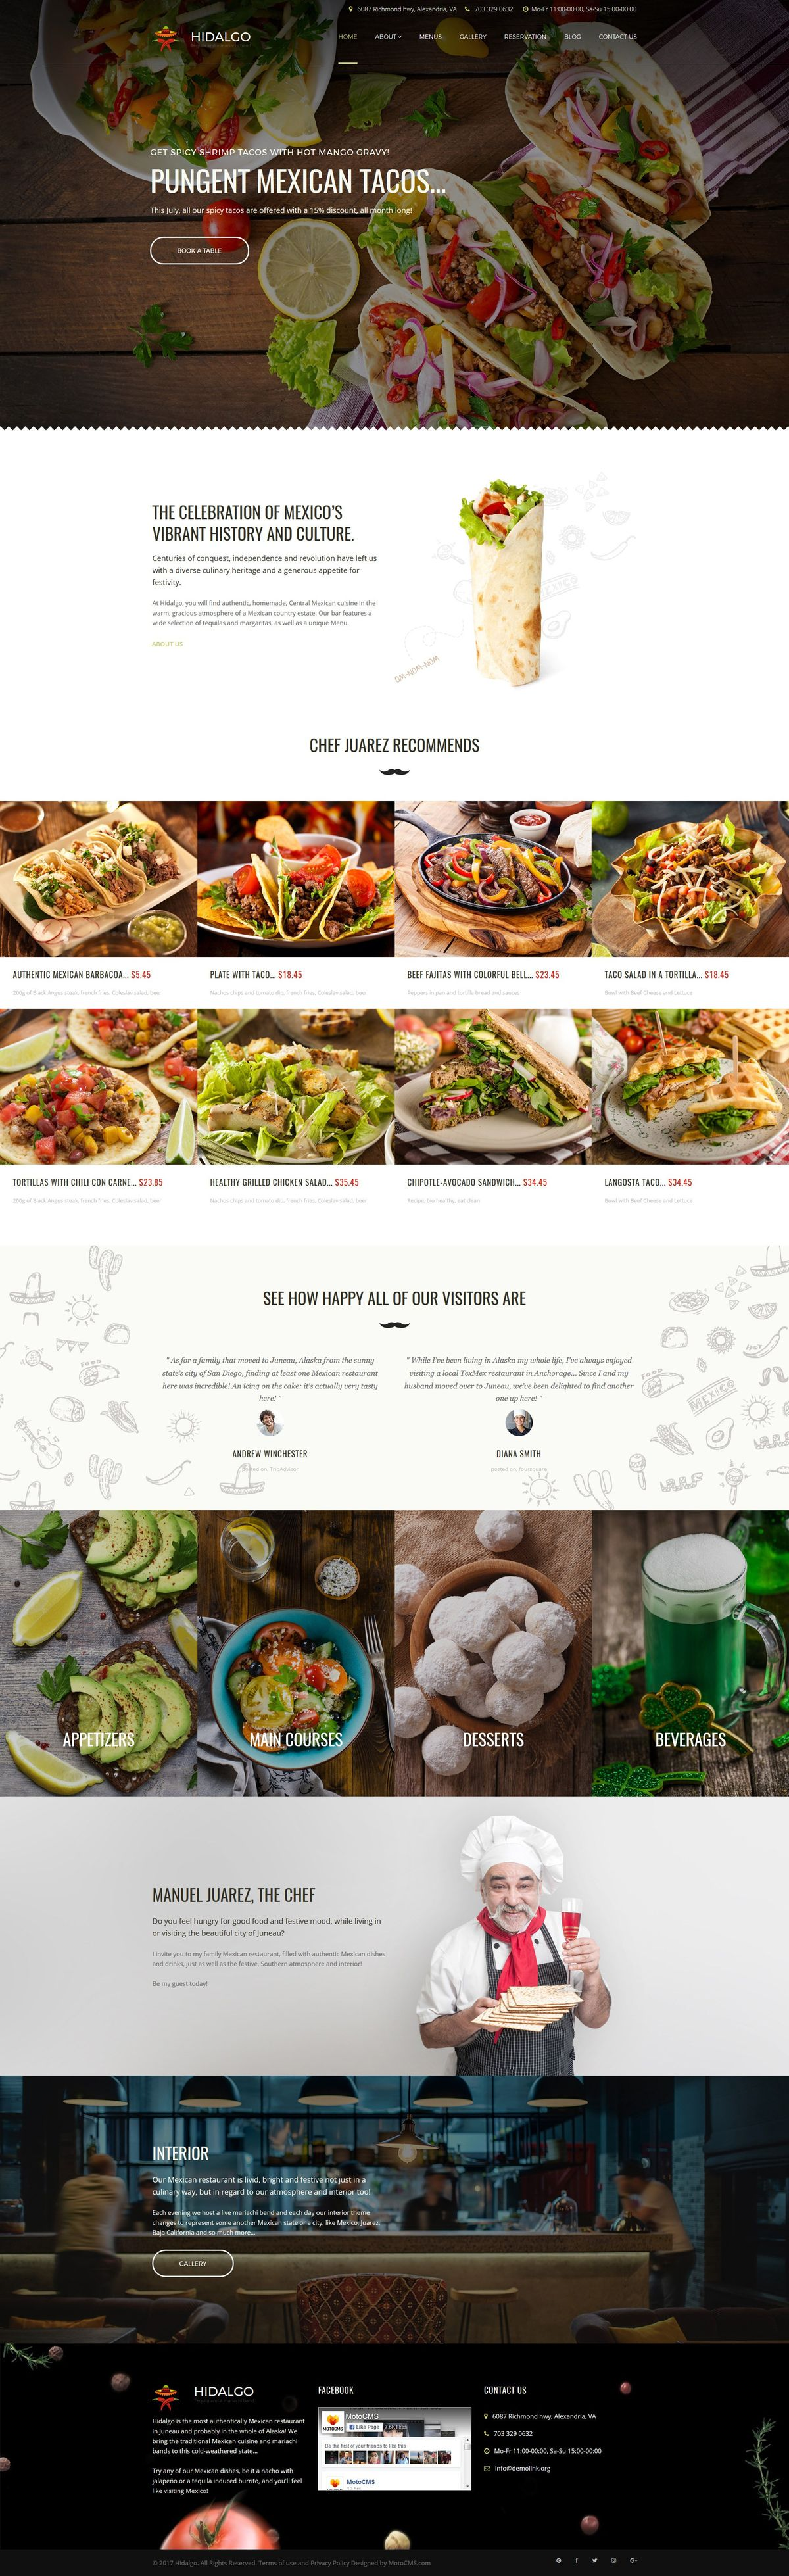 Restaurant Templates | Cafe Templates